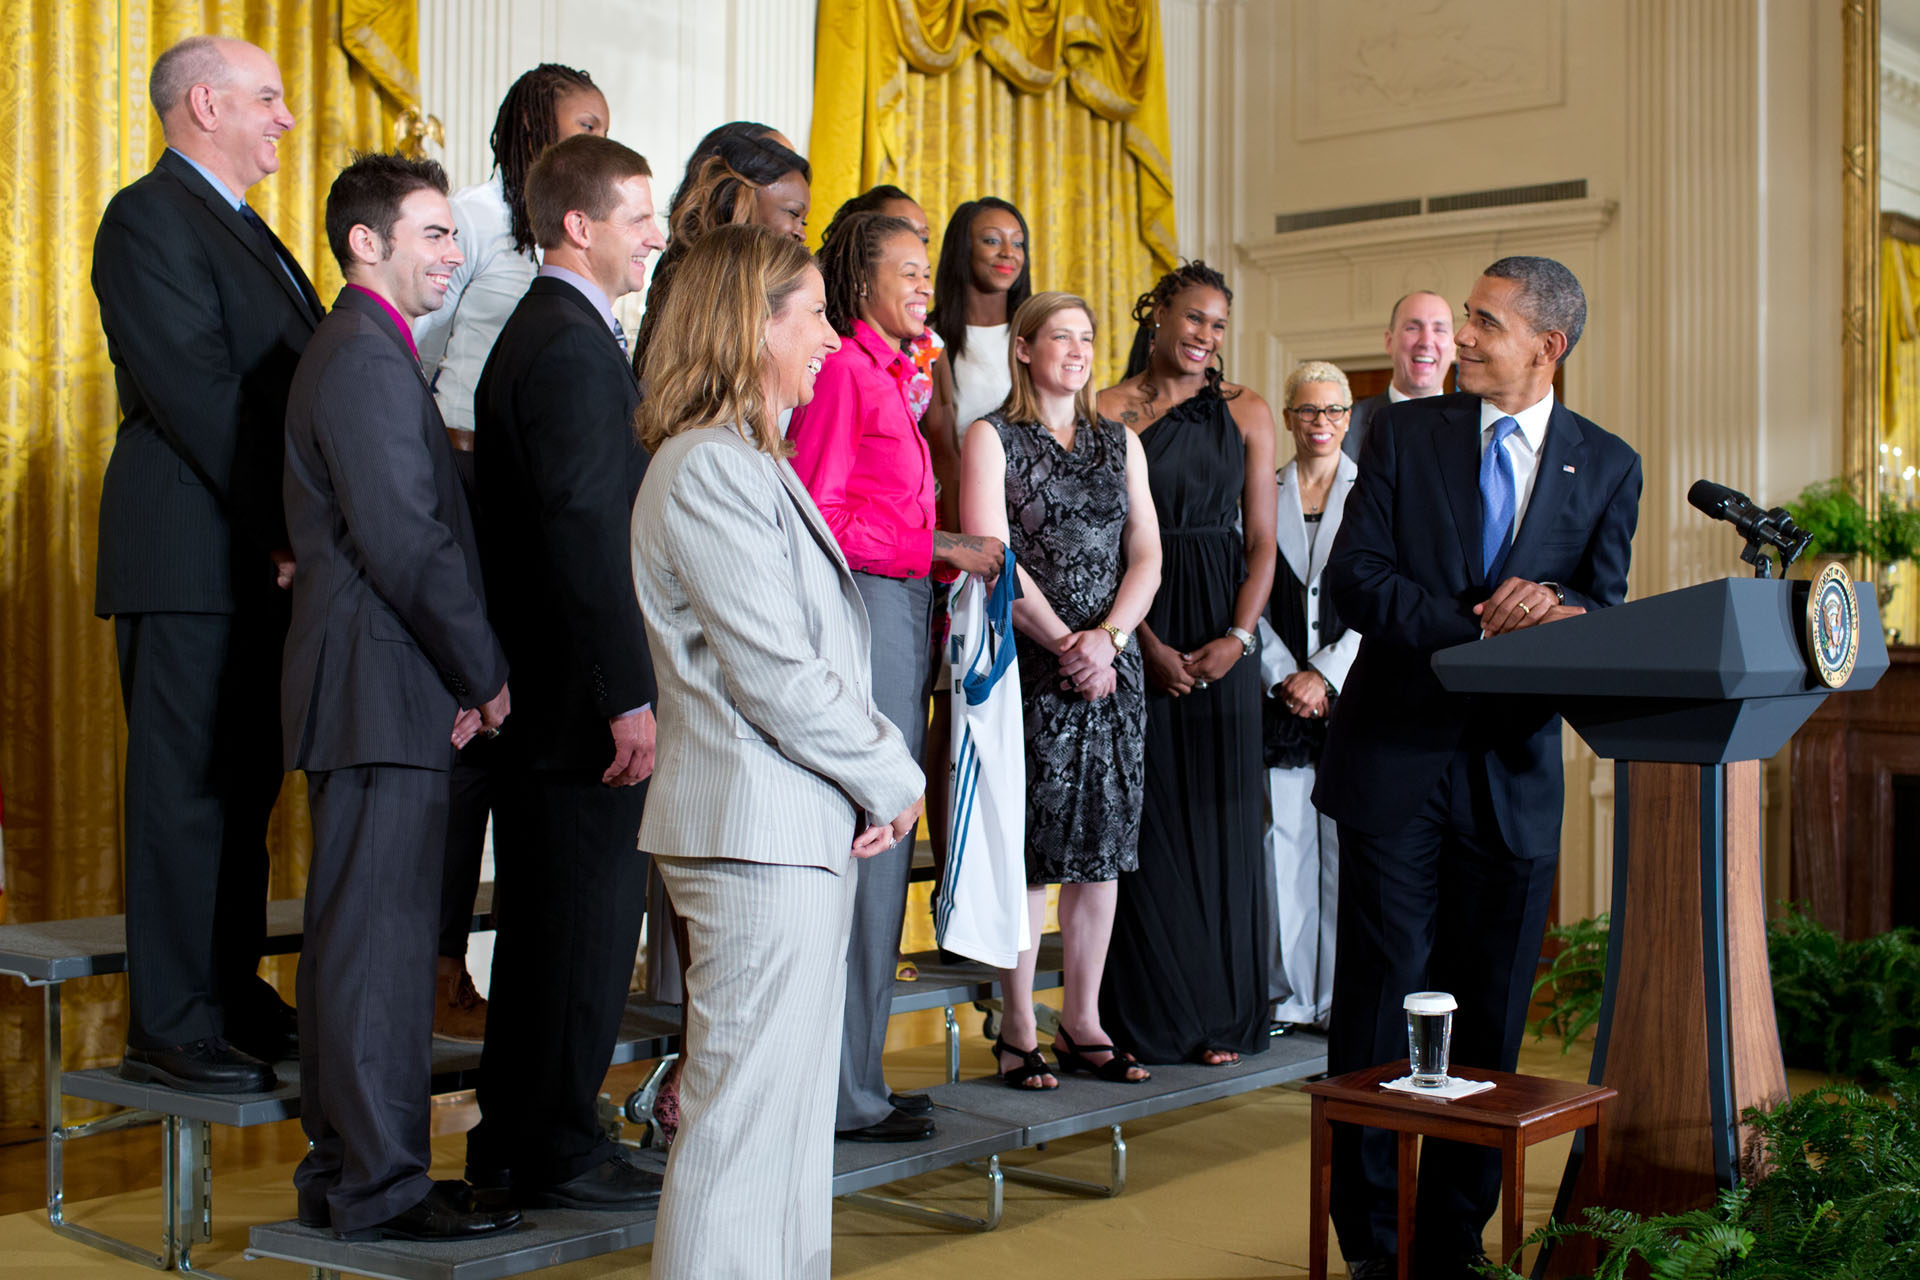 President Obama welcomes Coach Cheryl Reeve and the WNBA Champion Minnesota Lynx to the White House (September 18, 2012)